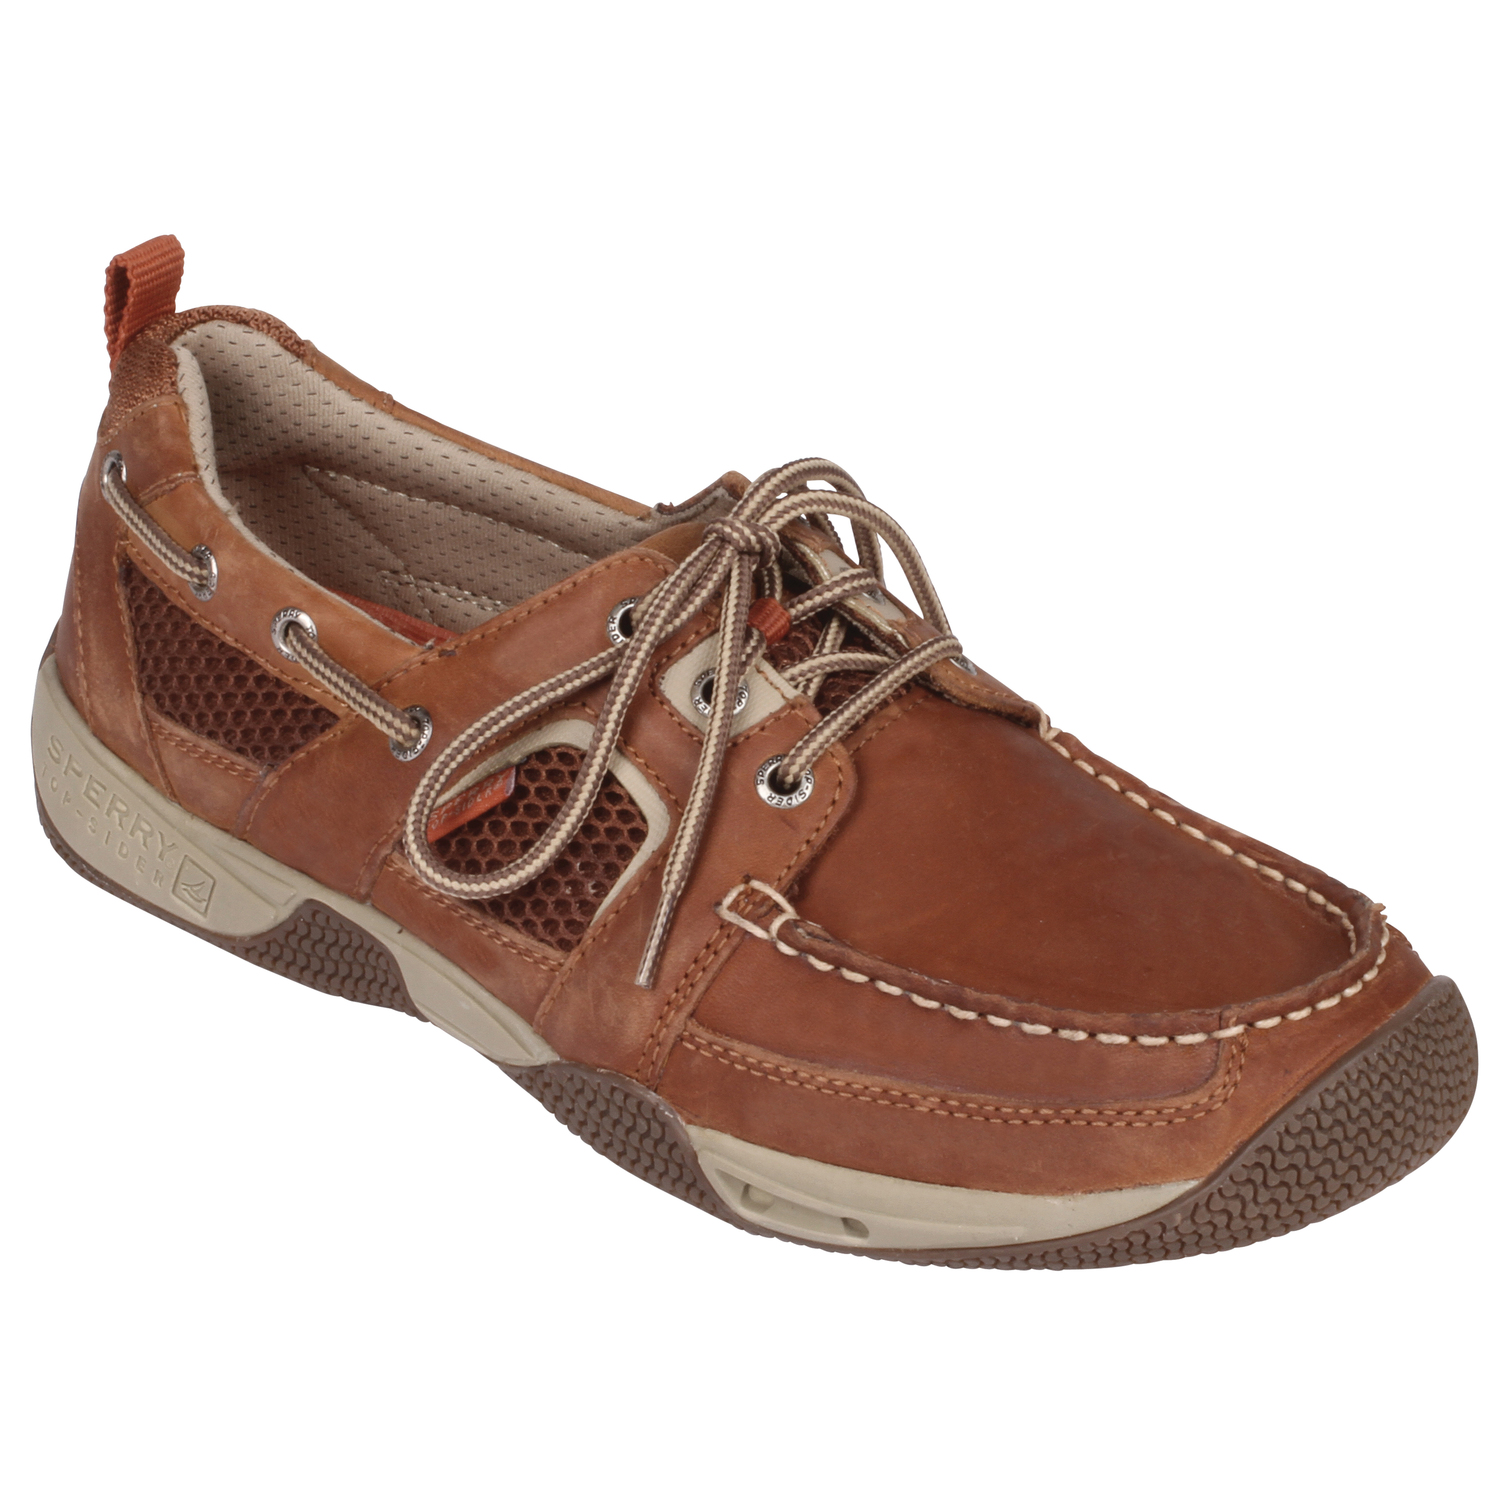 Sperry Mens Sea Kite Sport Moc Boat Shoes